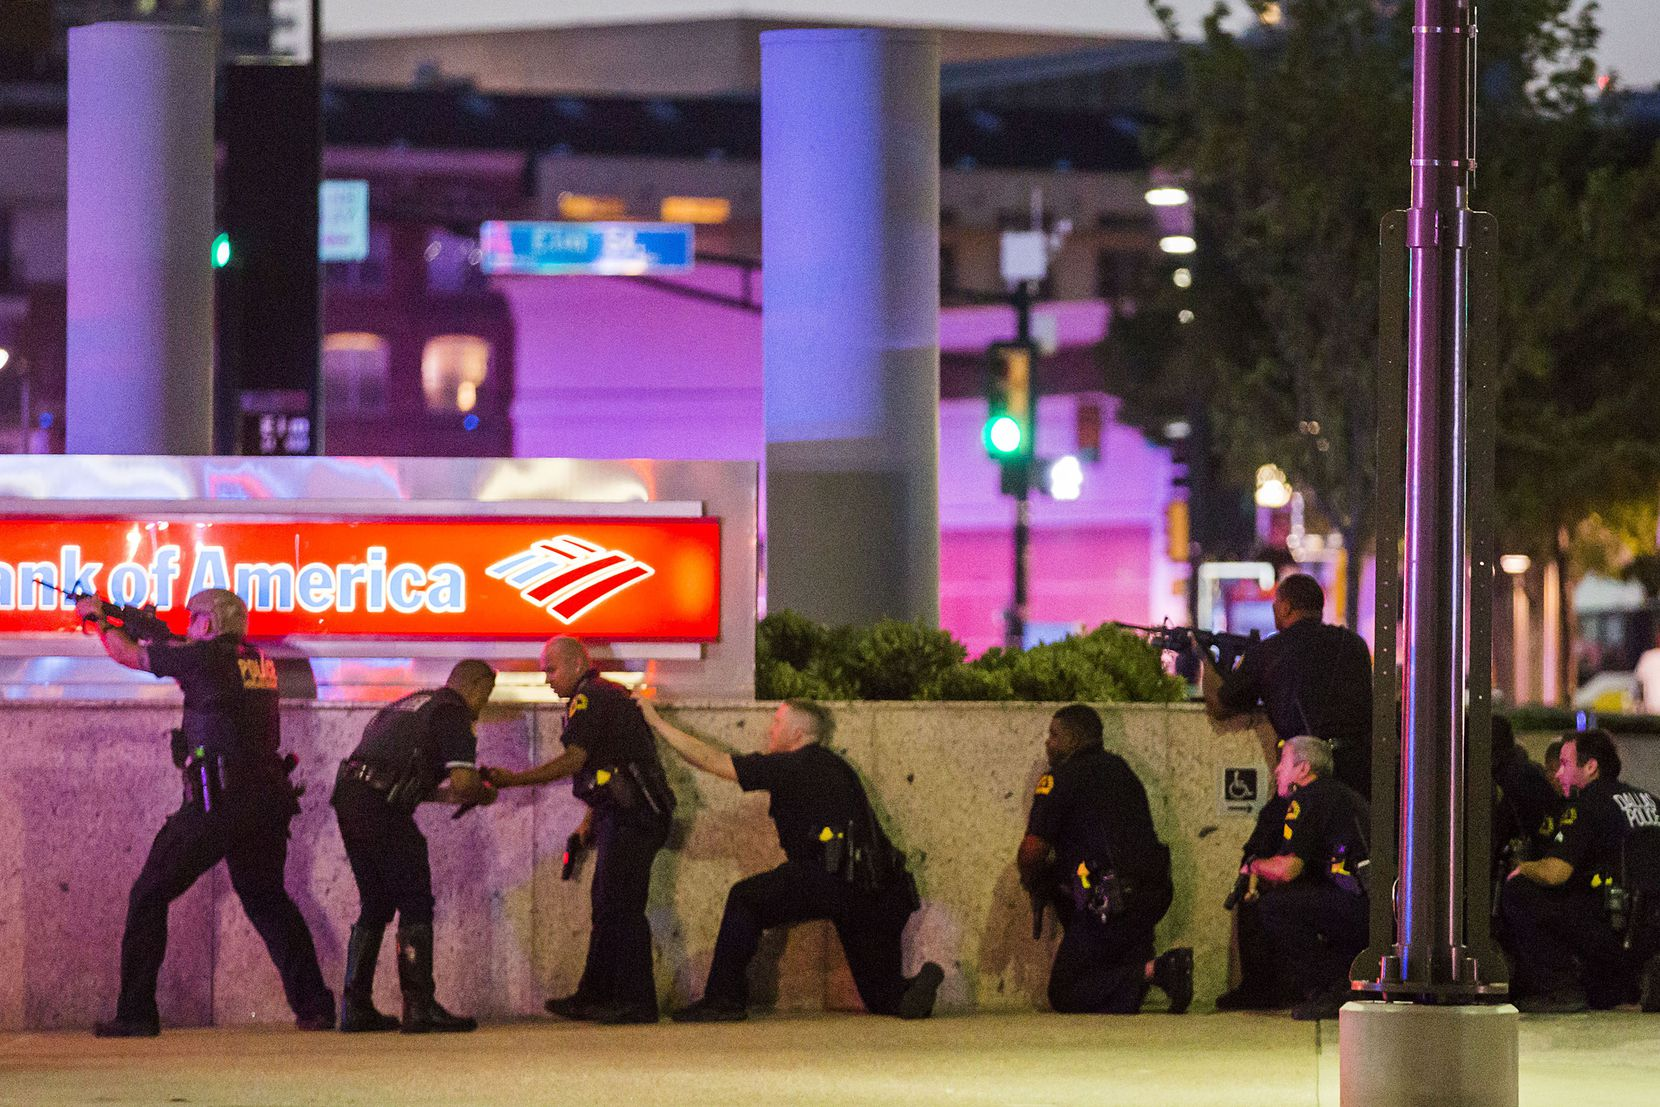 Dallas Police respond after shots were fired at a Black Lives Matter rally in downtown Dallas on Thursday, July 7, 2016. (Smiley N. Pool/The Dallas Morning News)